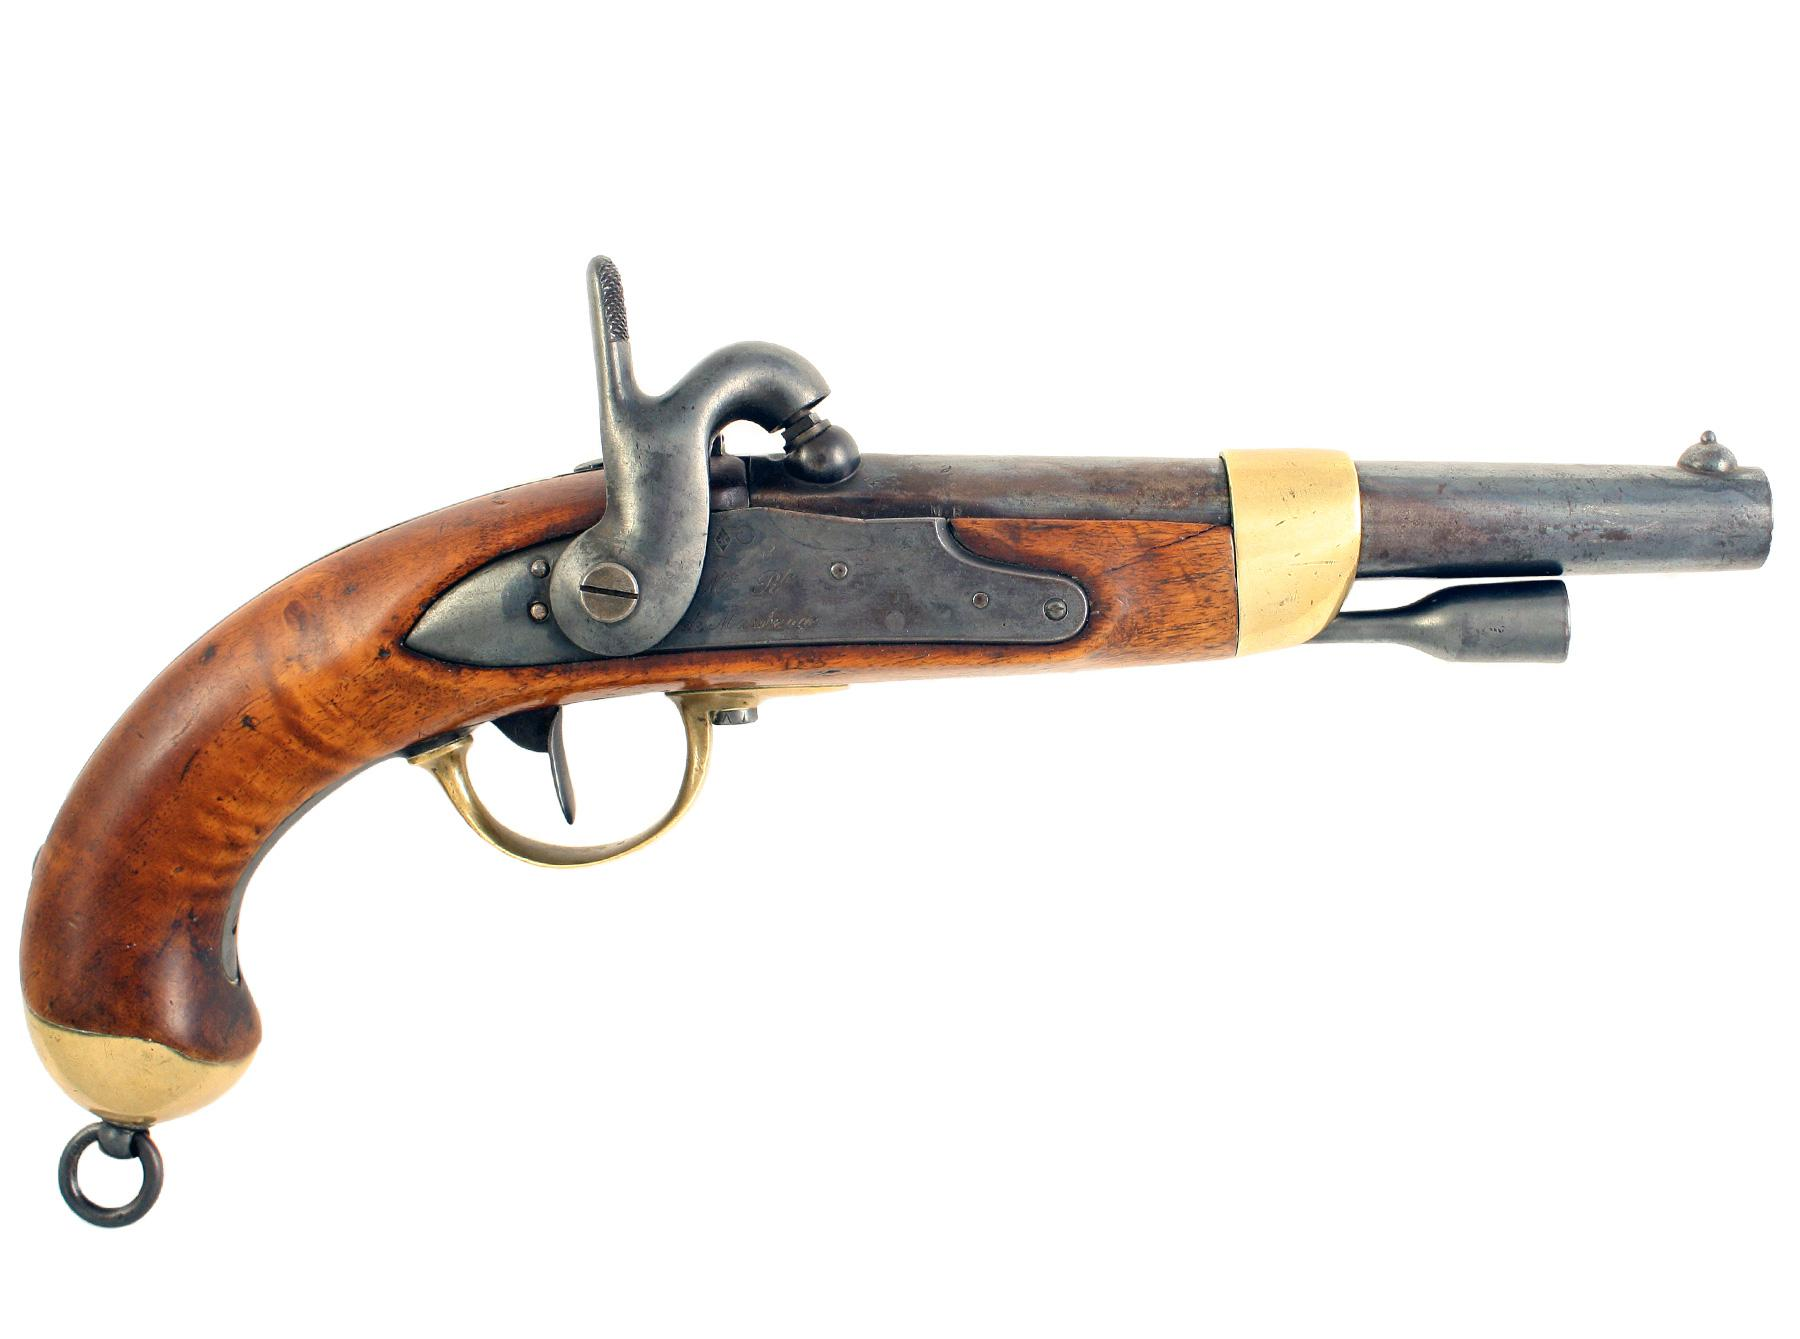 A French 1822 Model Pistol